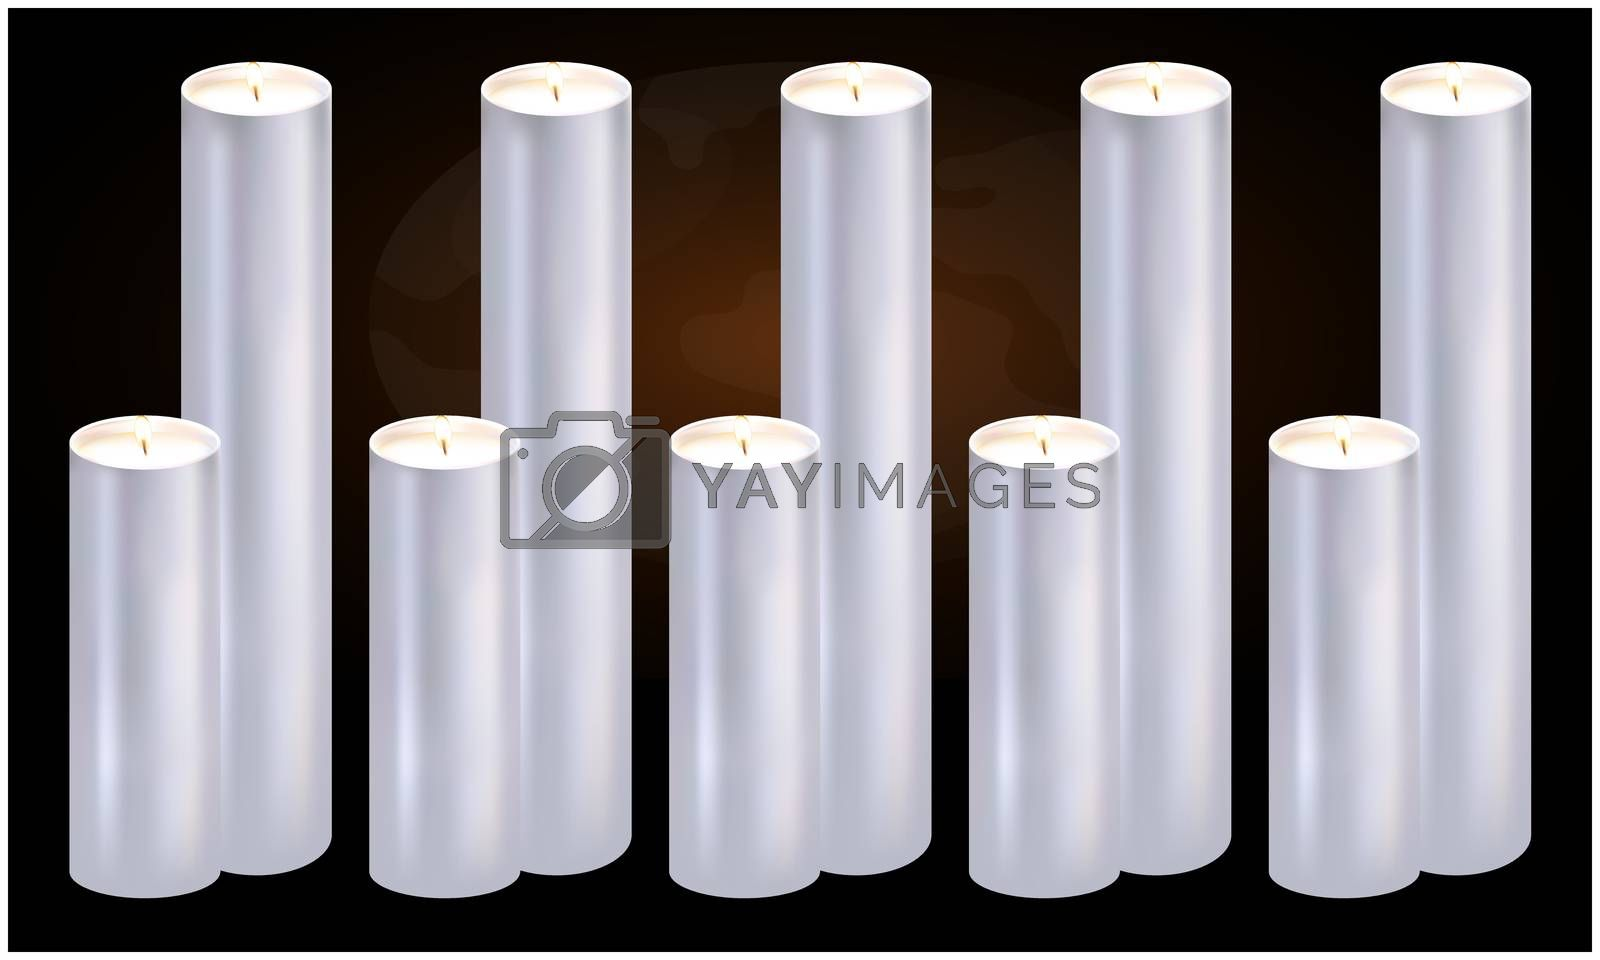 several burning candles on abstract dark backgrounds